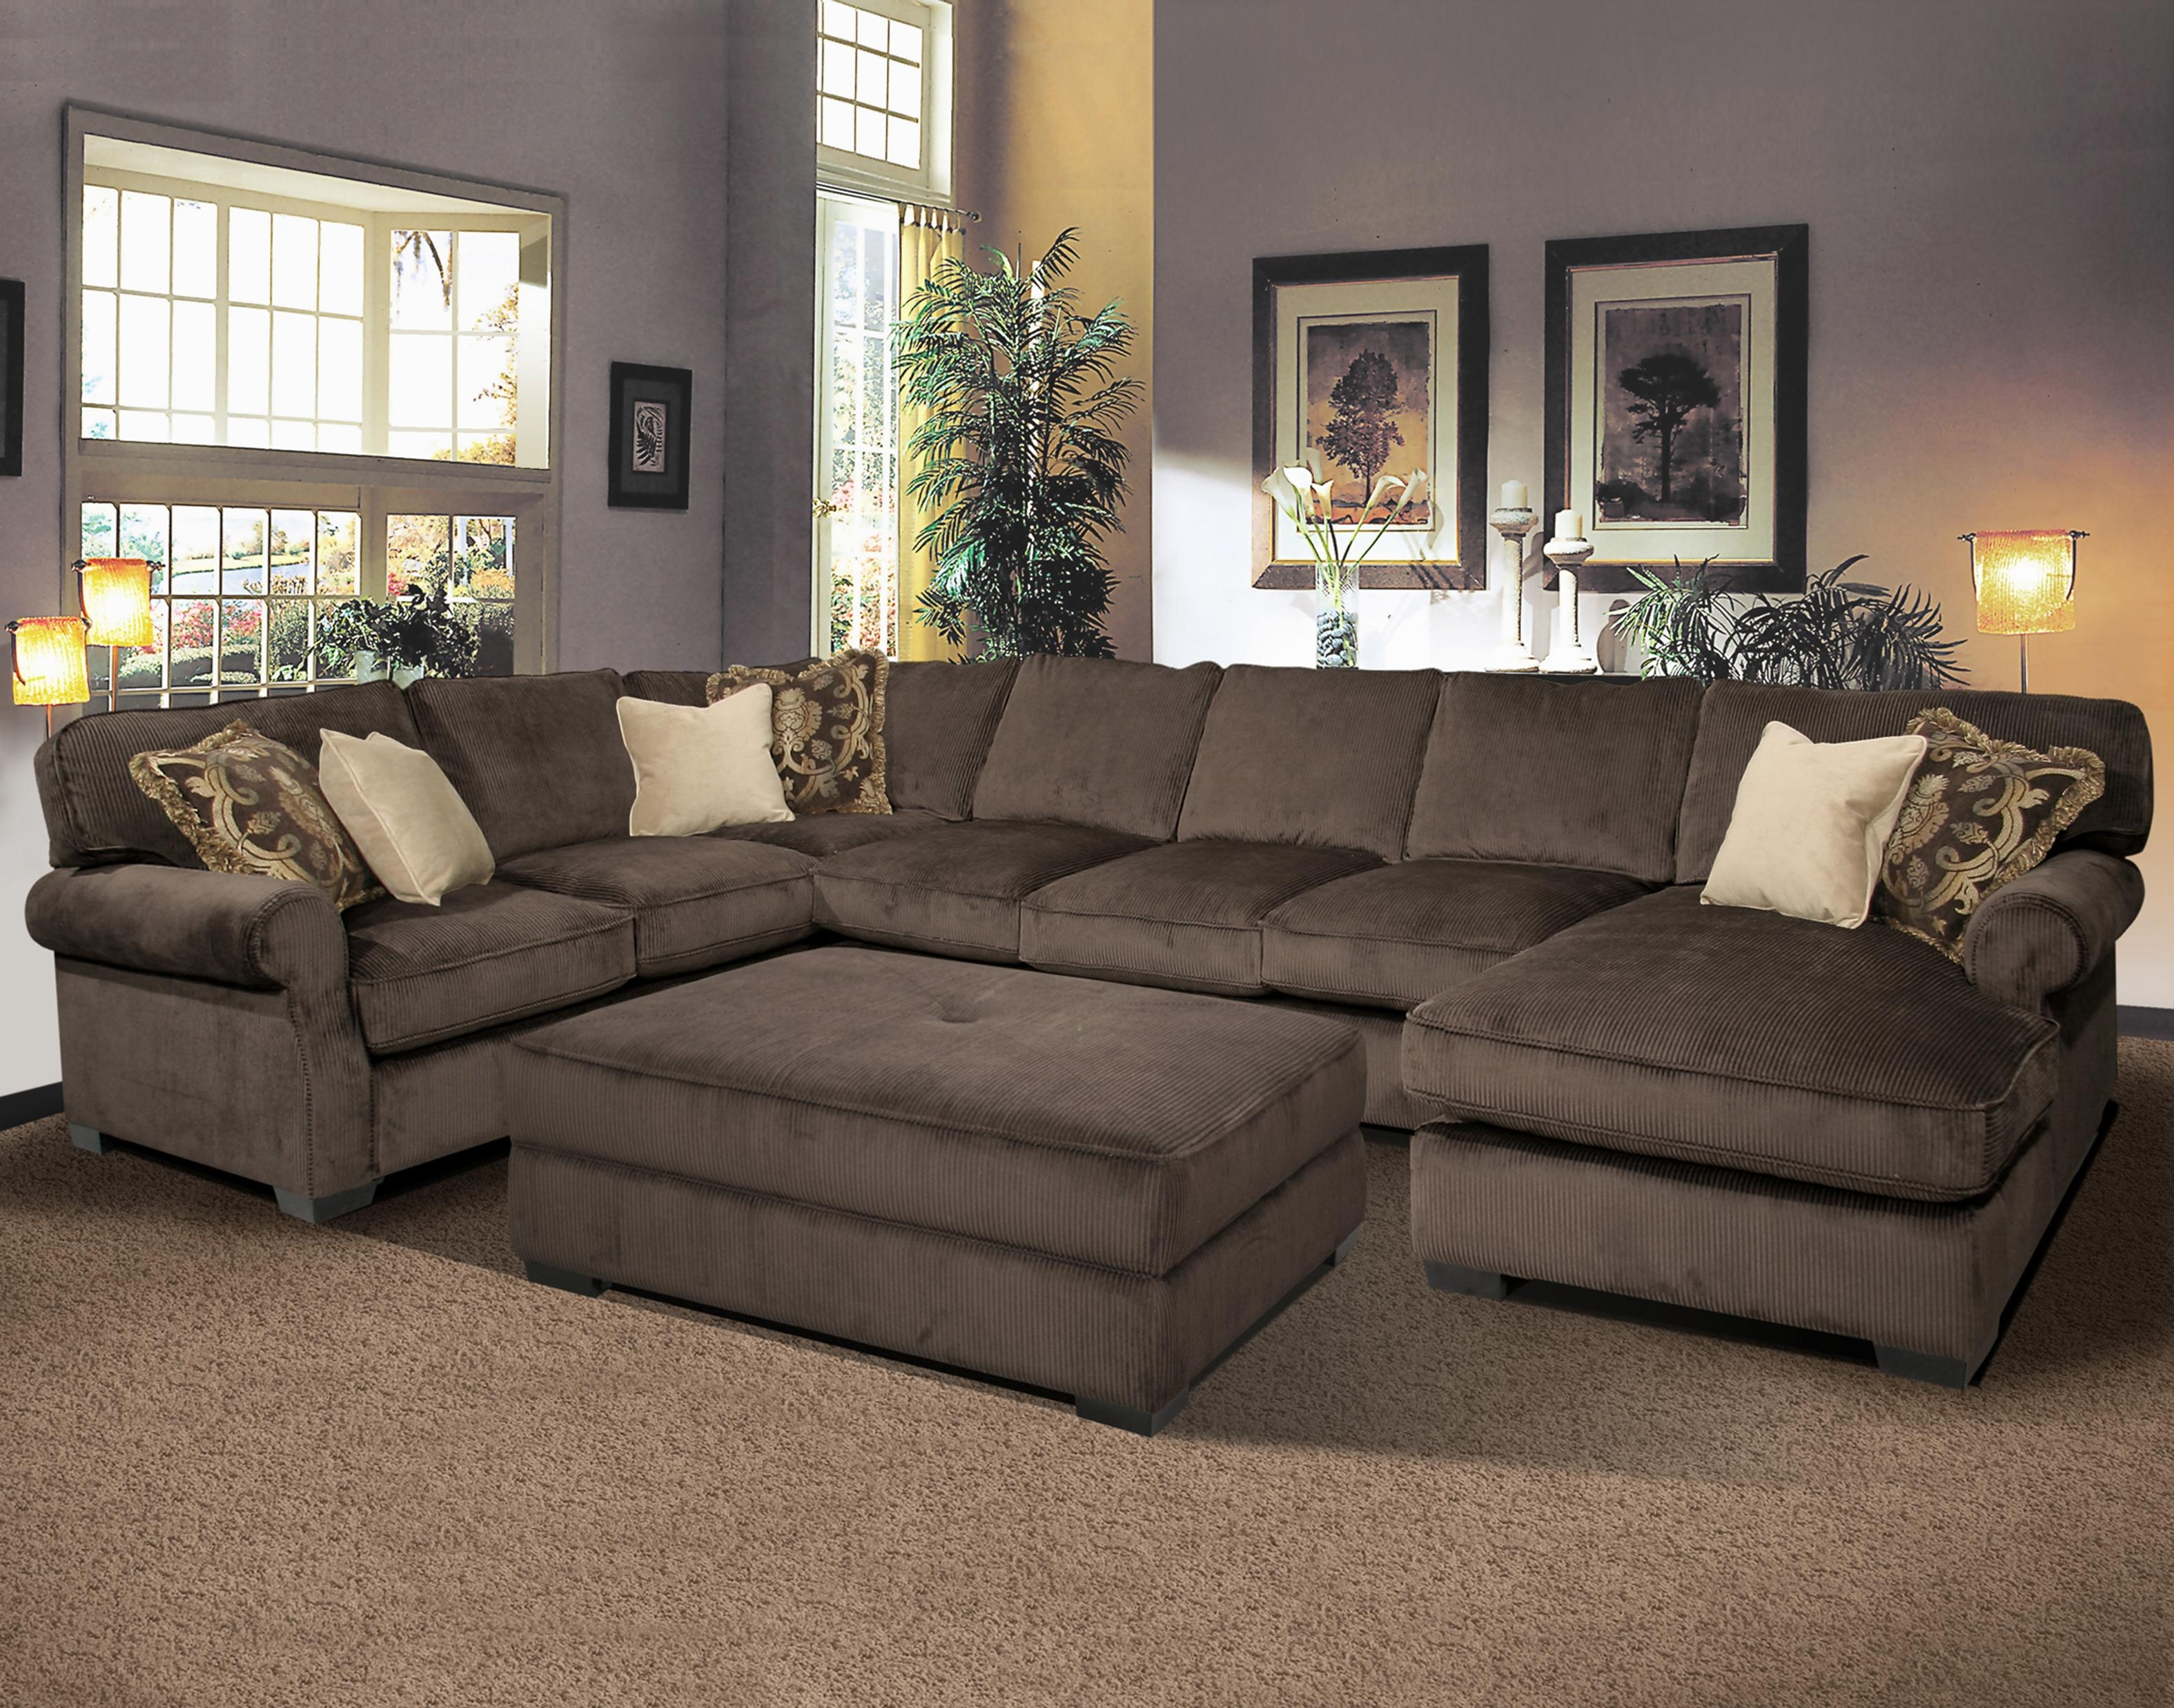 Sleeper Sofa Rochester Ny – Fjellkjeden Intended For Rochester Ny Sectional Sofas (Image 10 of 10)